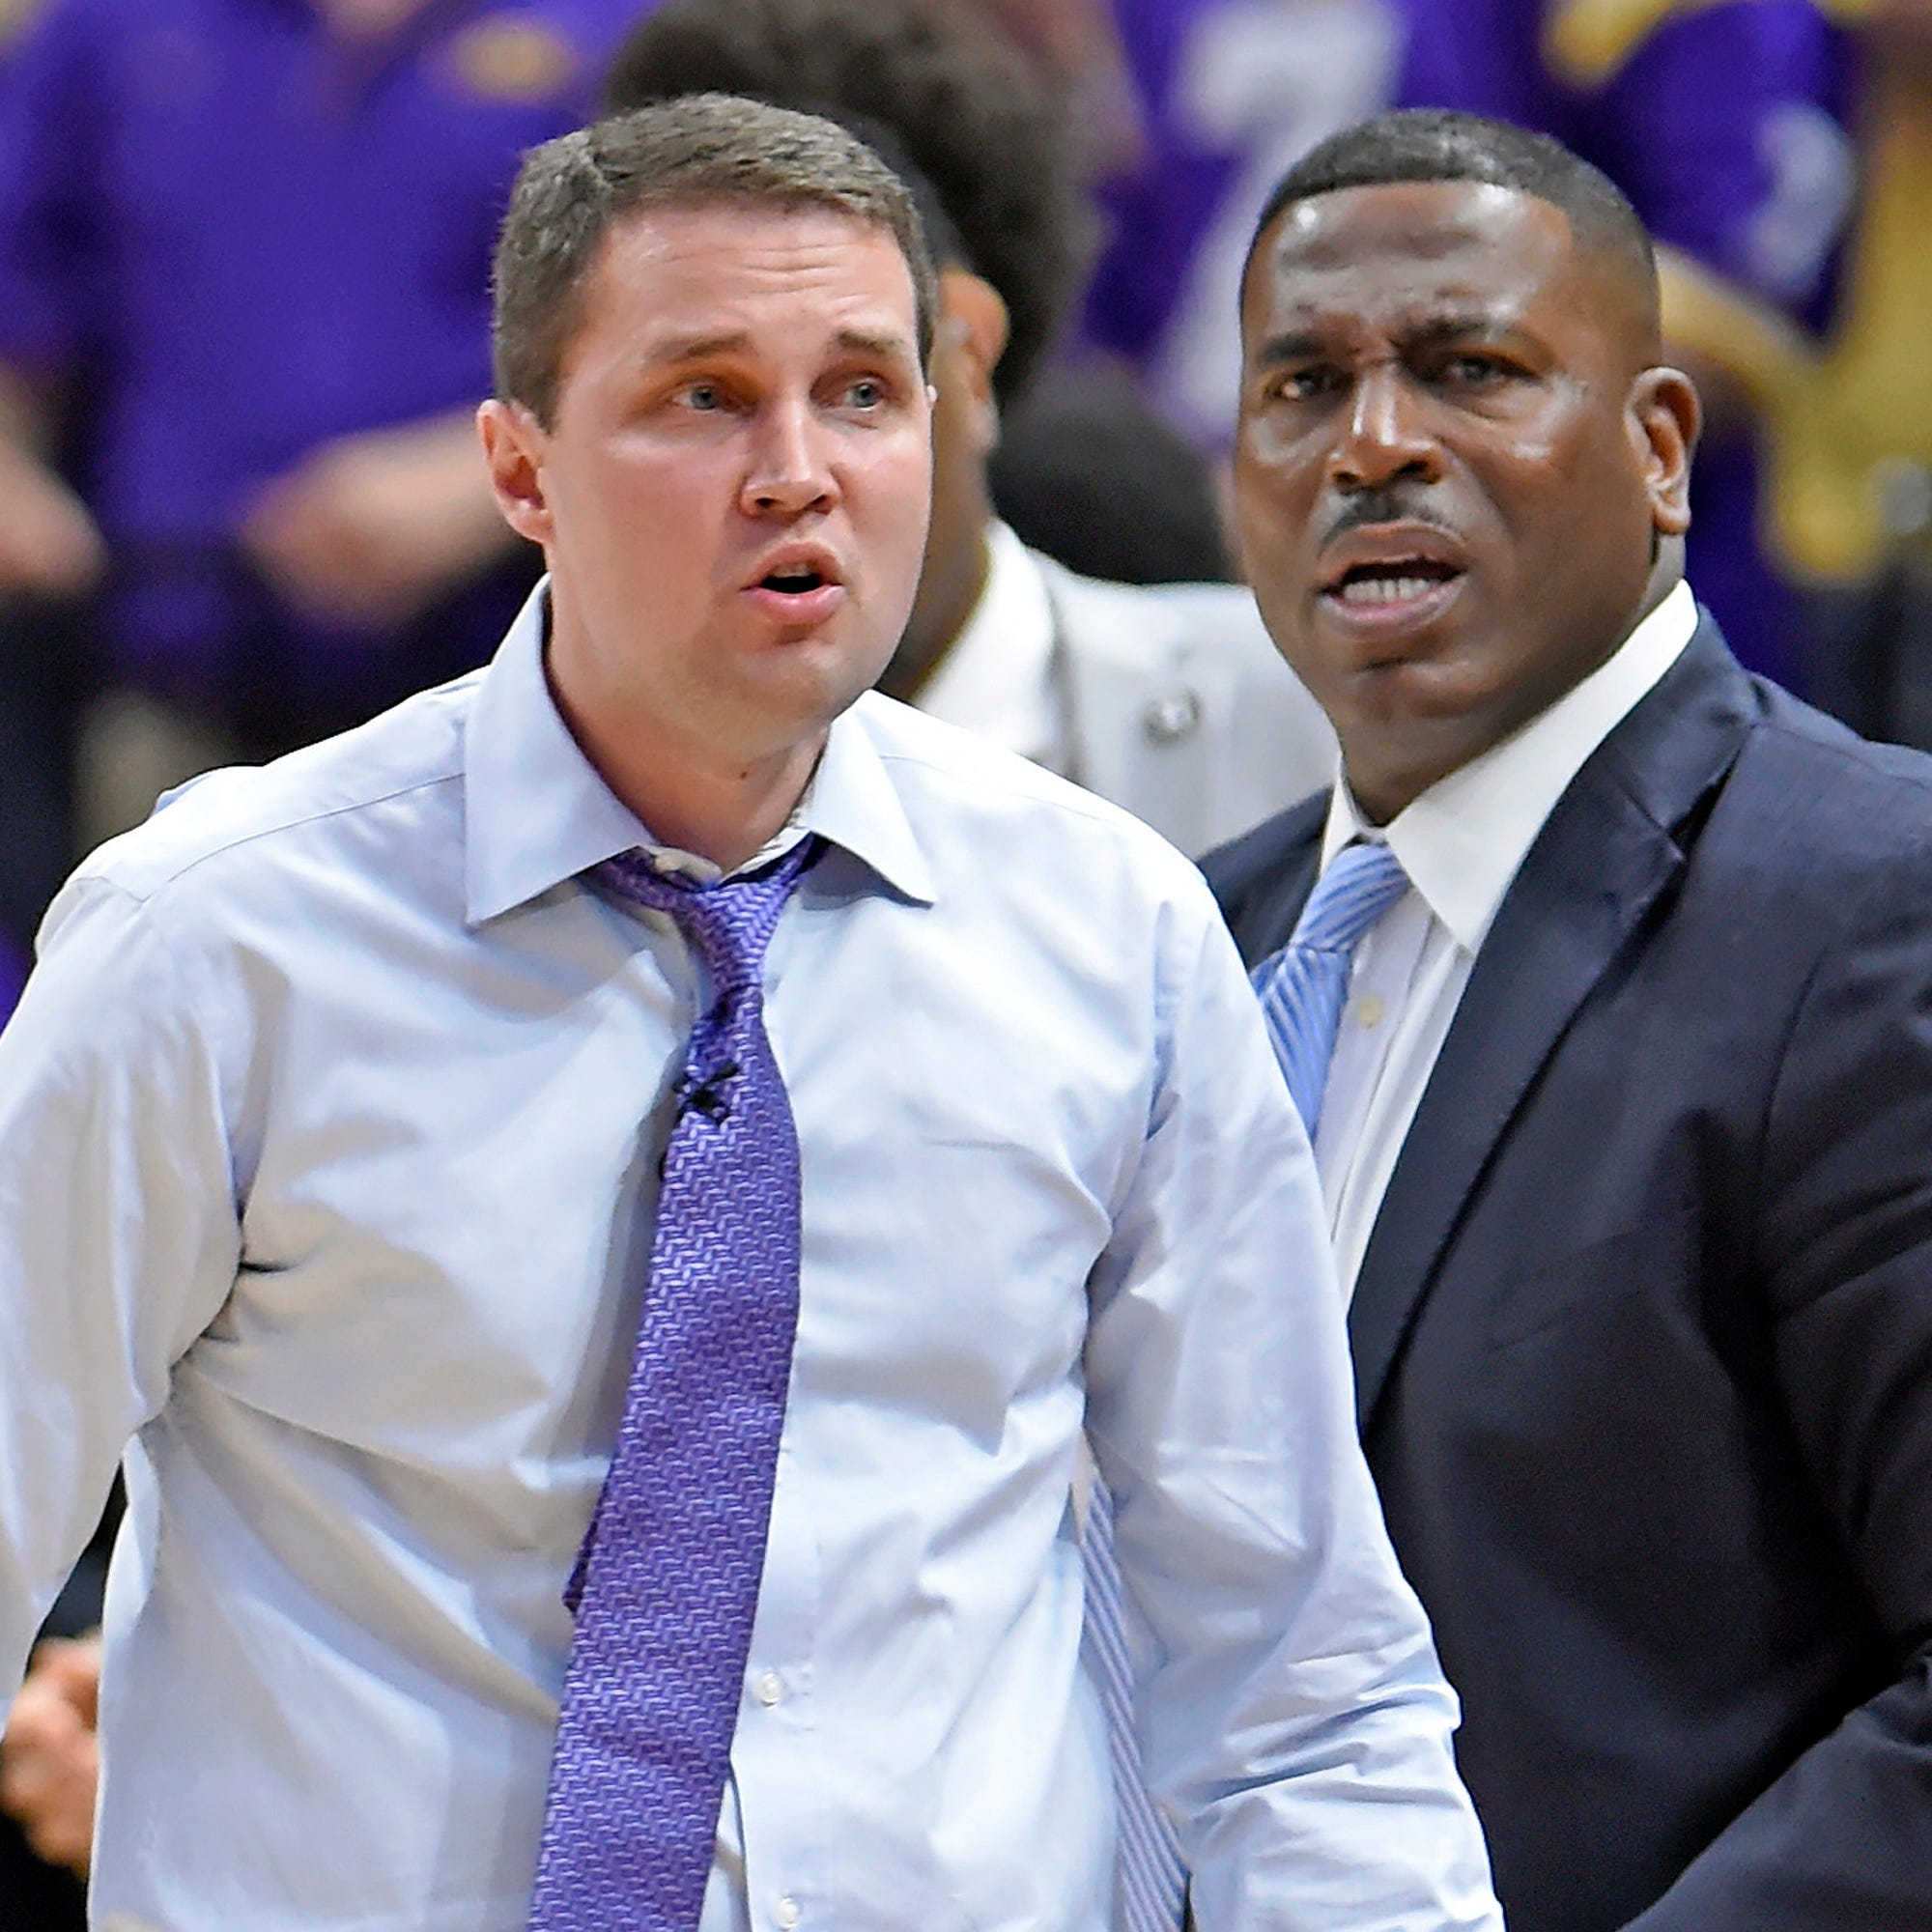 Friday's basketball: Coach's ban casts shadow on LSU